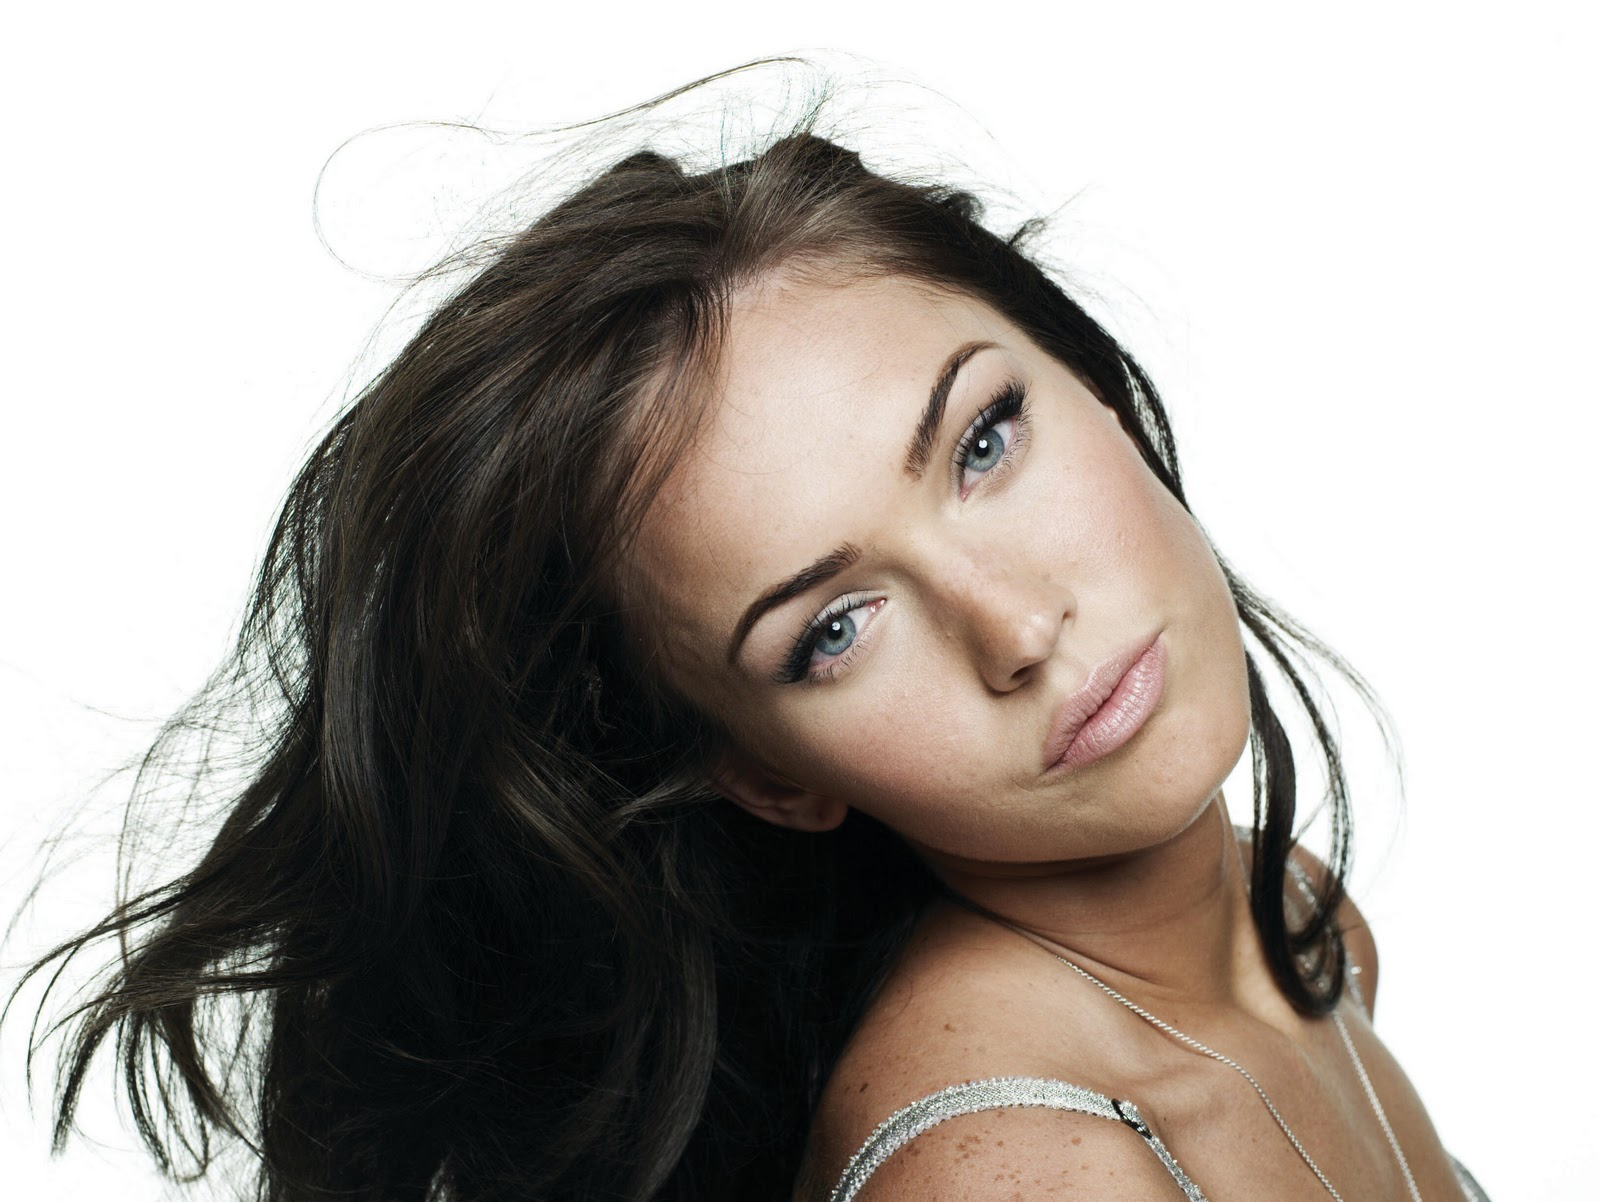 Sex Wallpapers Of Megan Fox Nude Images